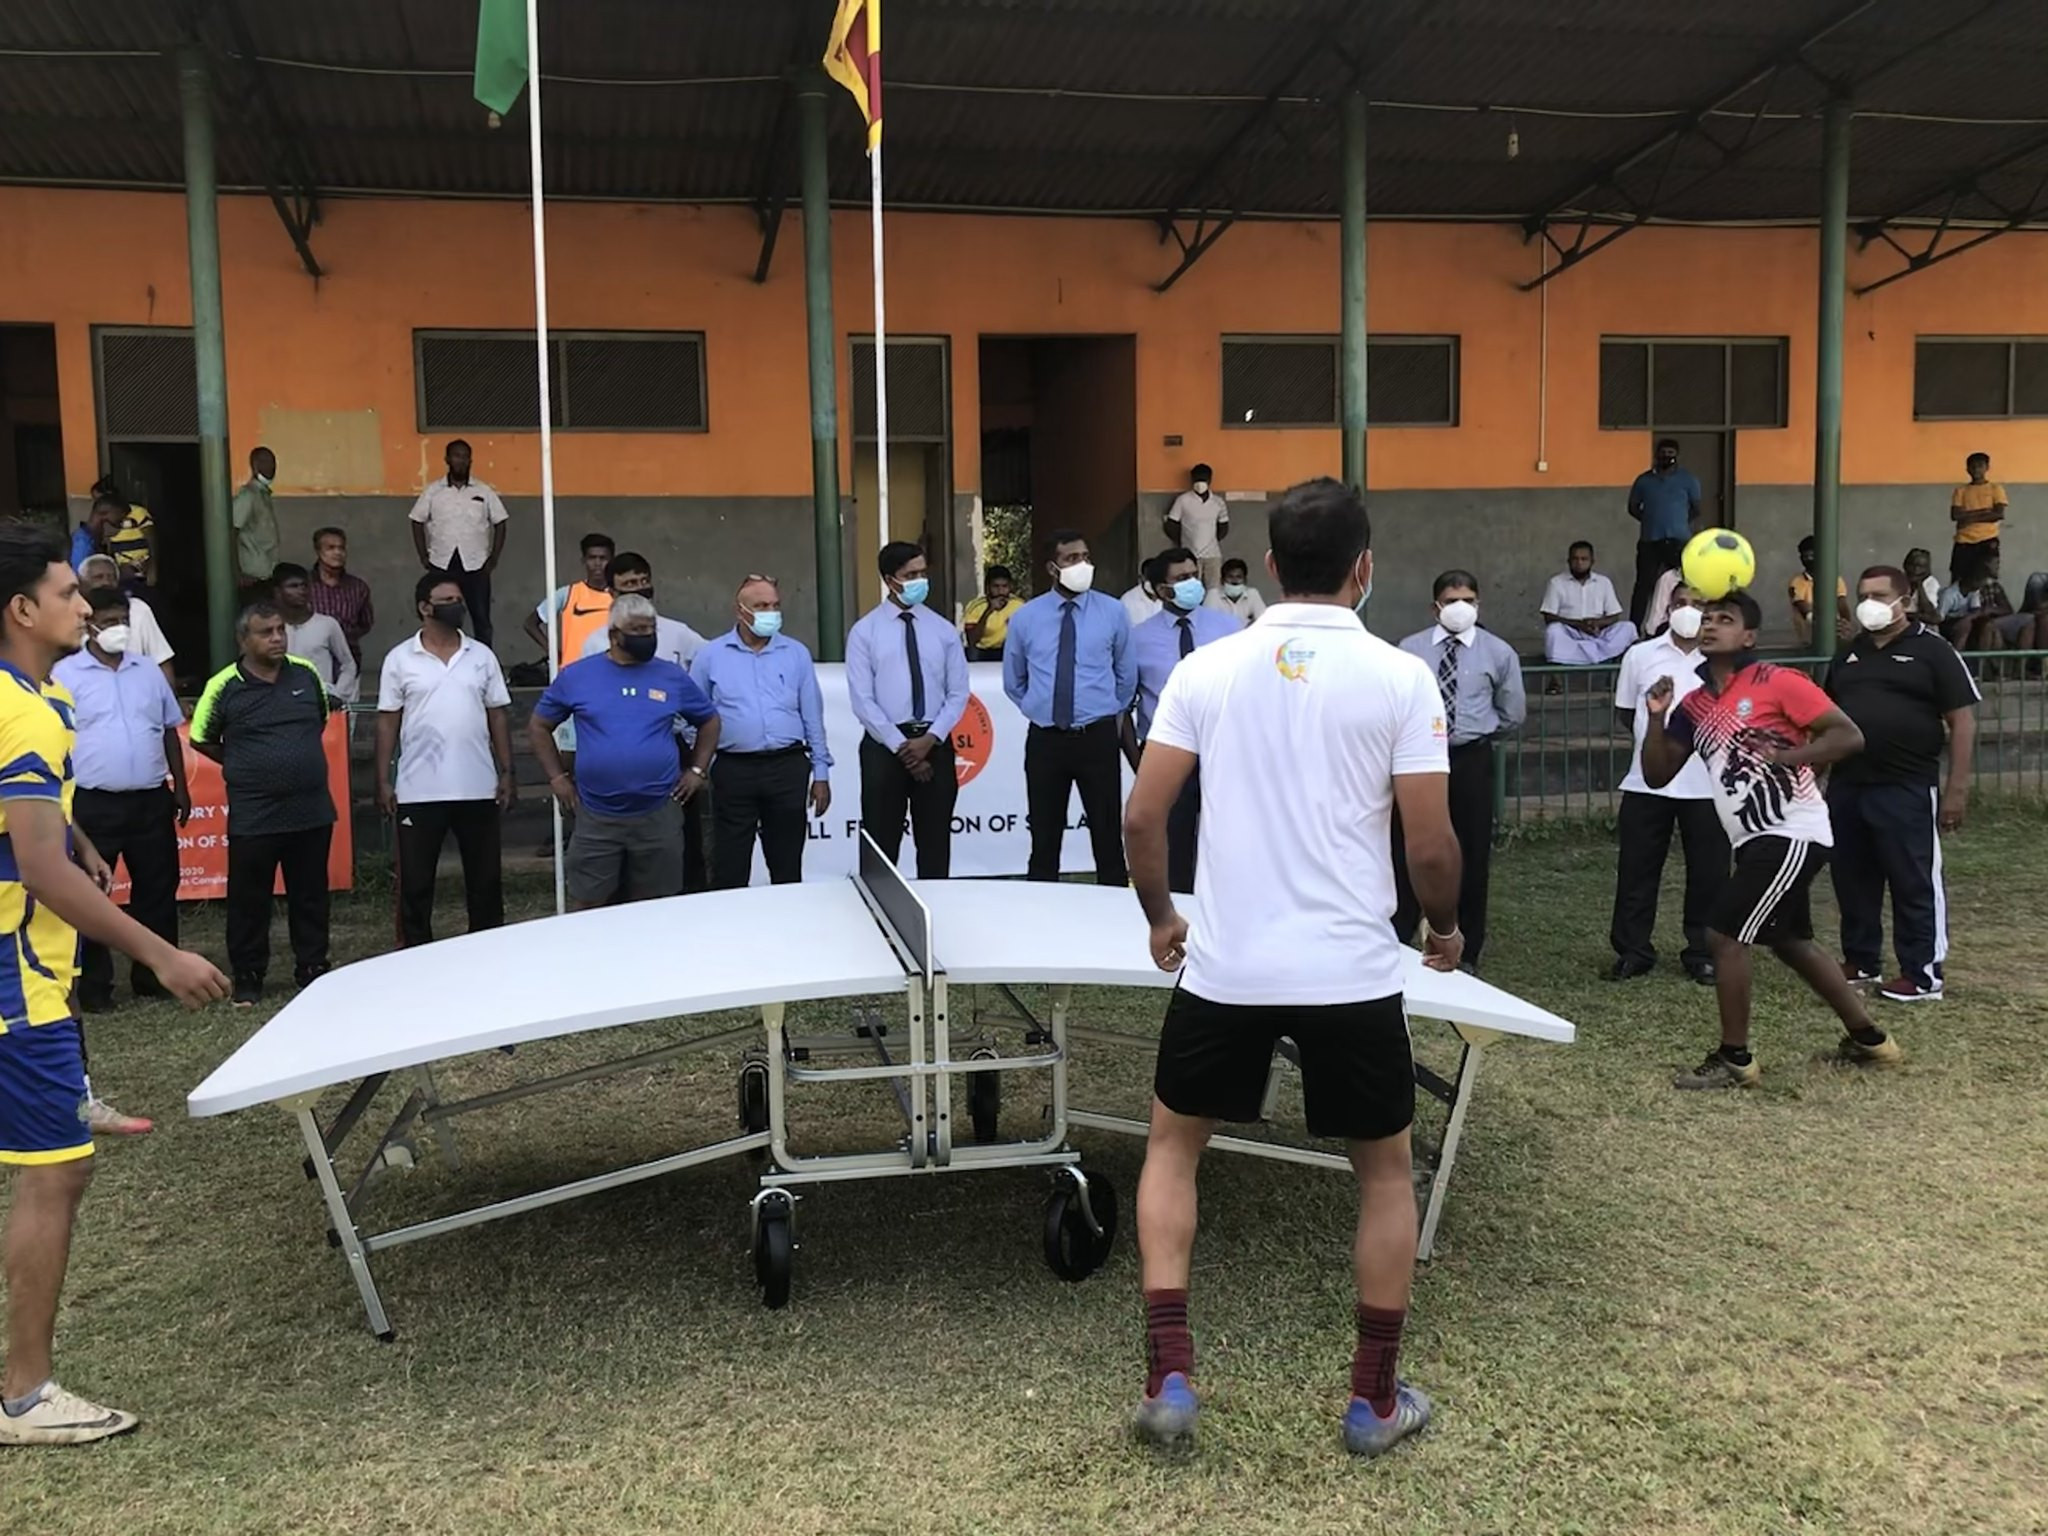 The Sri Lanka National Federation recently received 50 teqball tables ©FITEQ